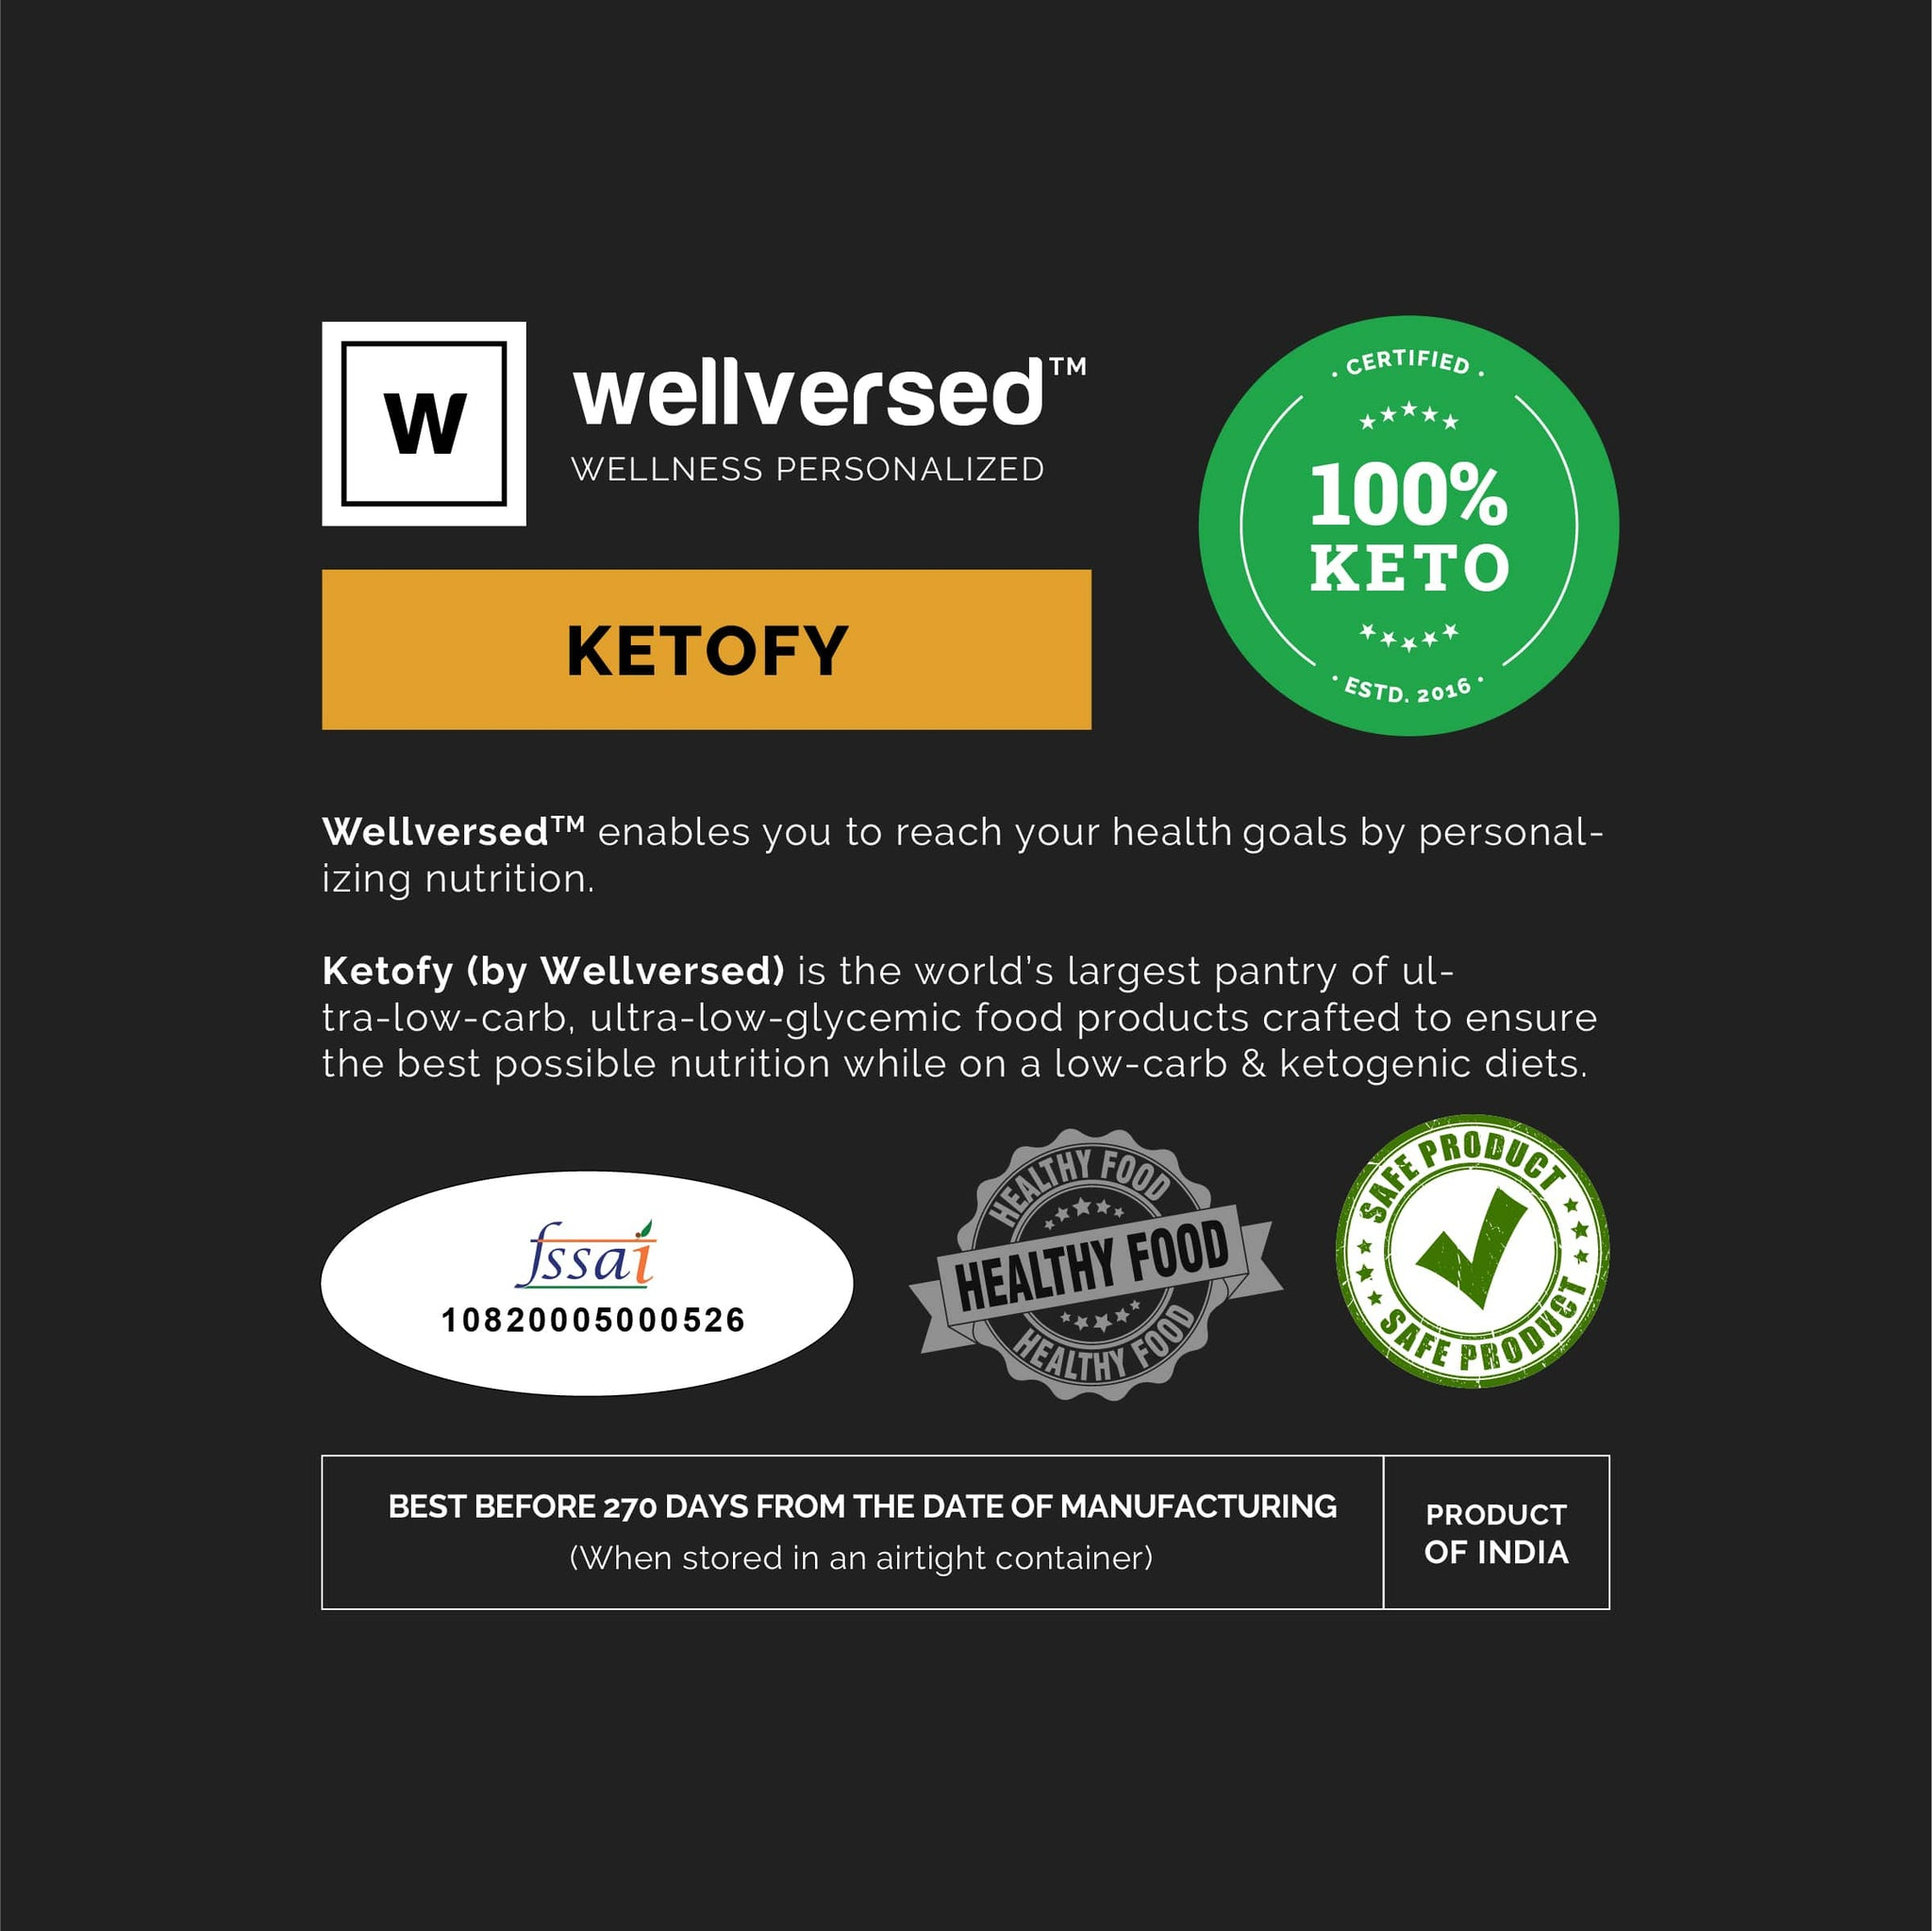 Ketofy Dietary Fibre | 7% Net Carbs